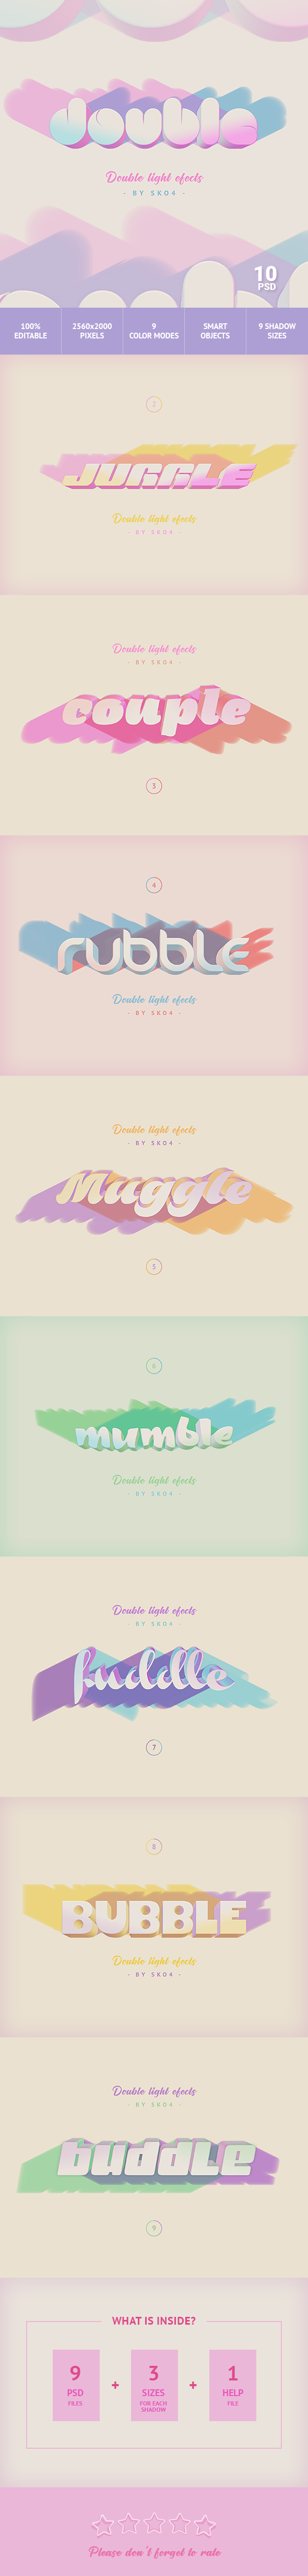 3D Text with Color Shadows - Text Effects Actions